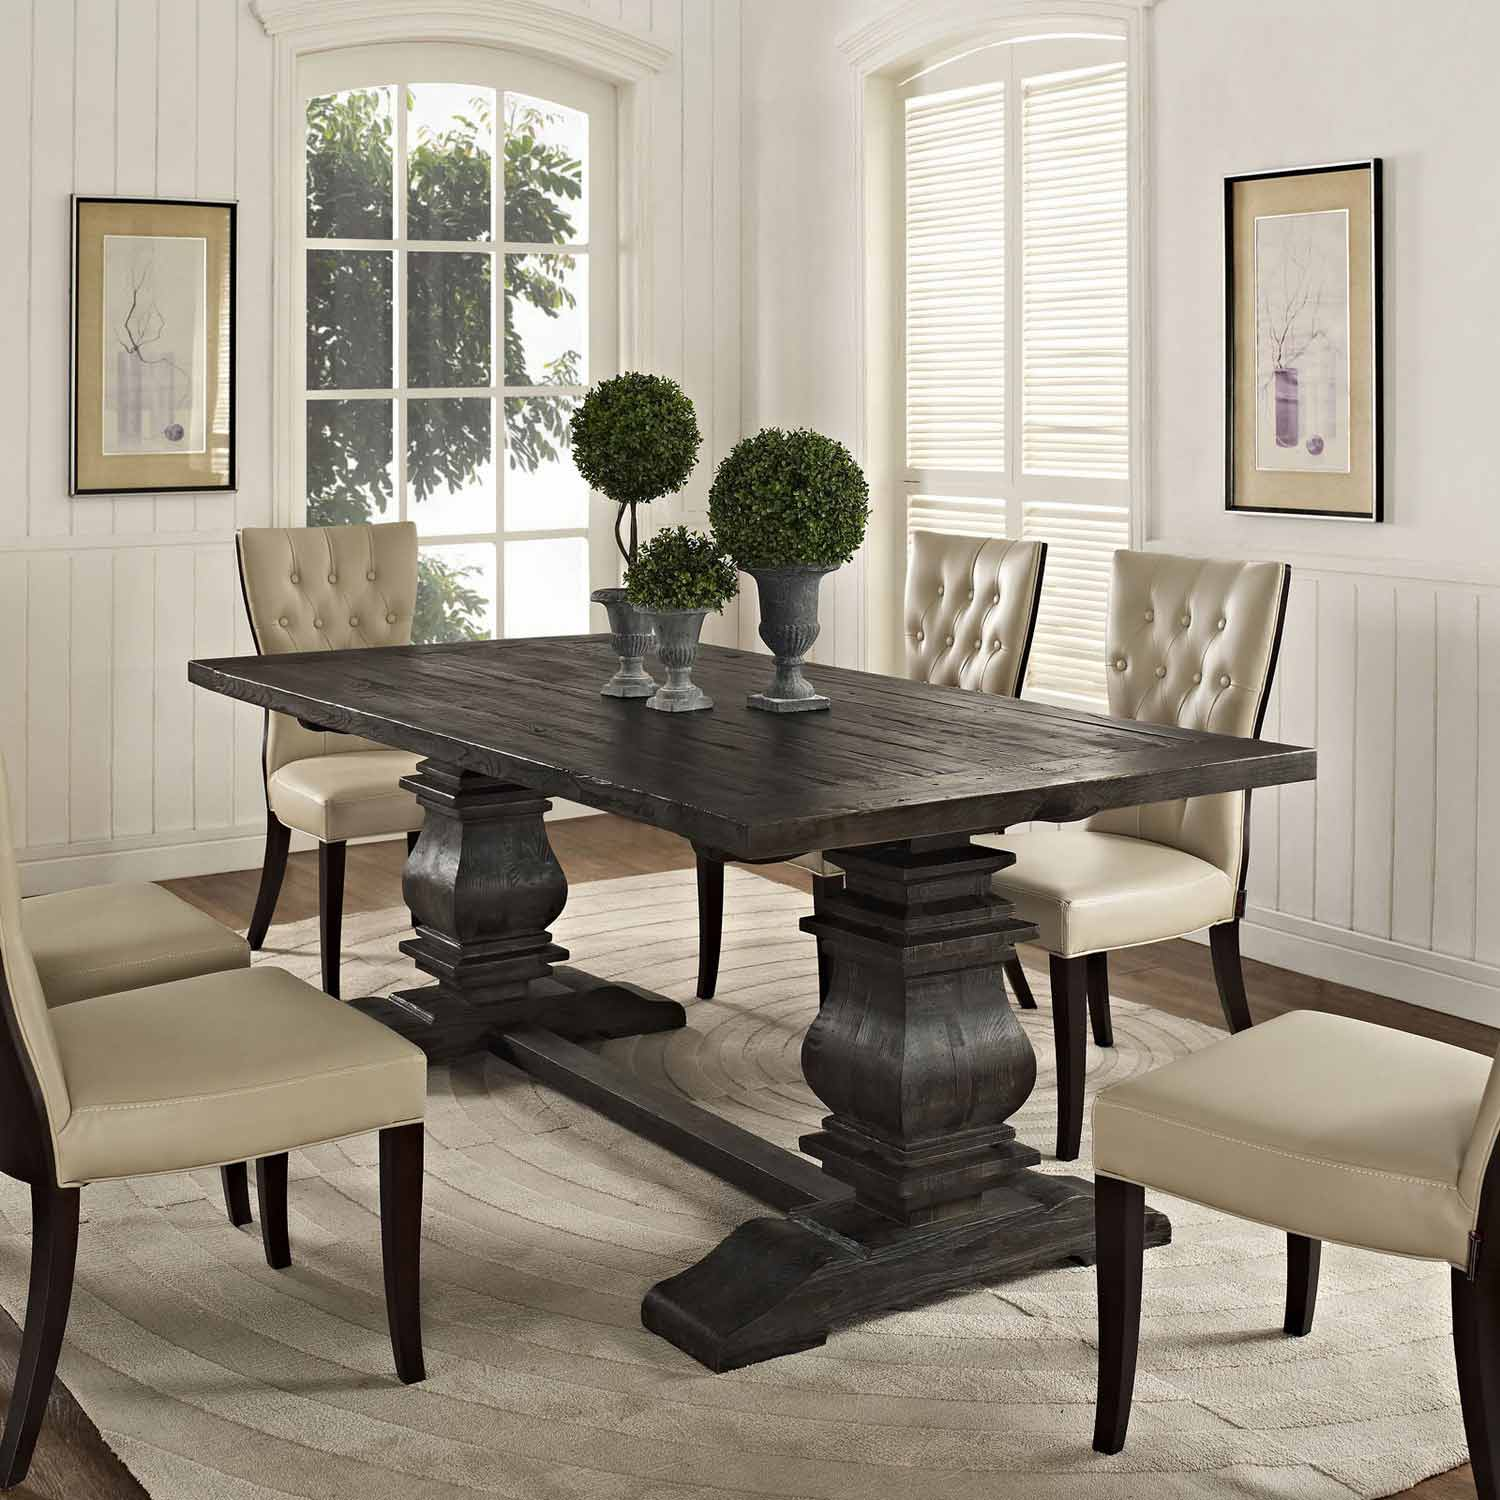 Dining Wood Table: Modway Column Wood Dining Table